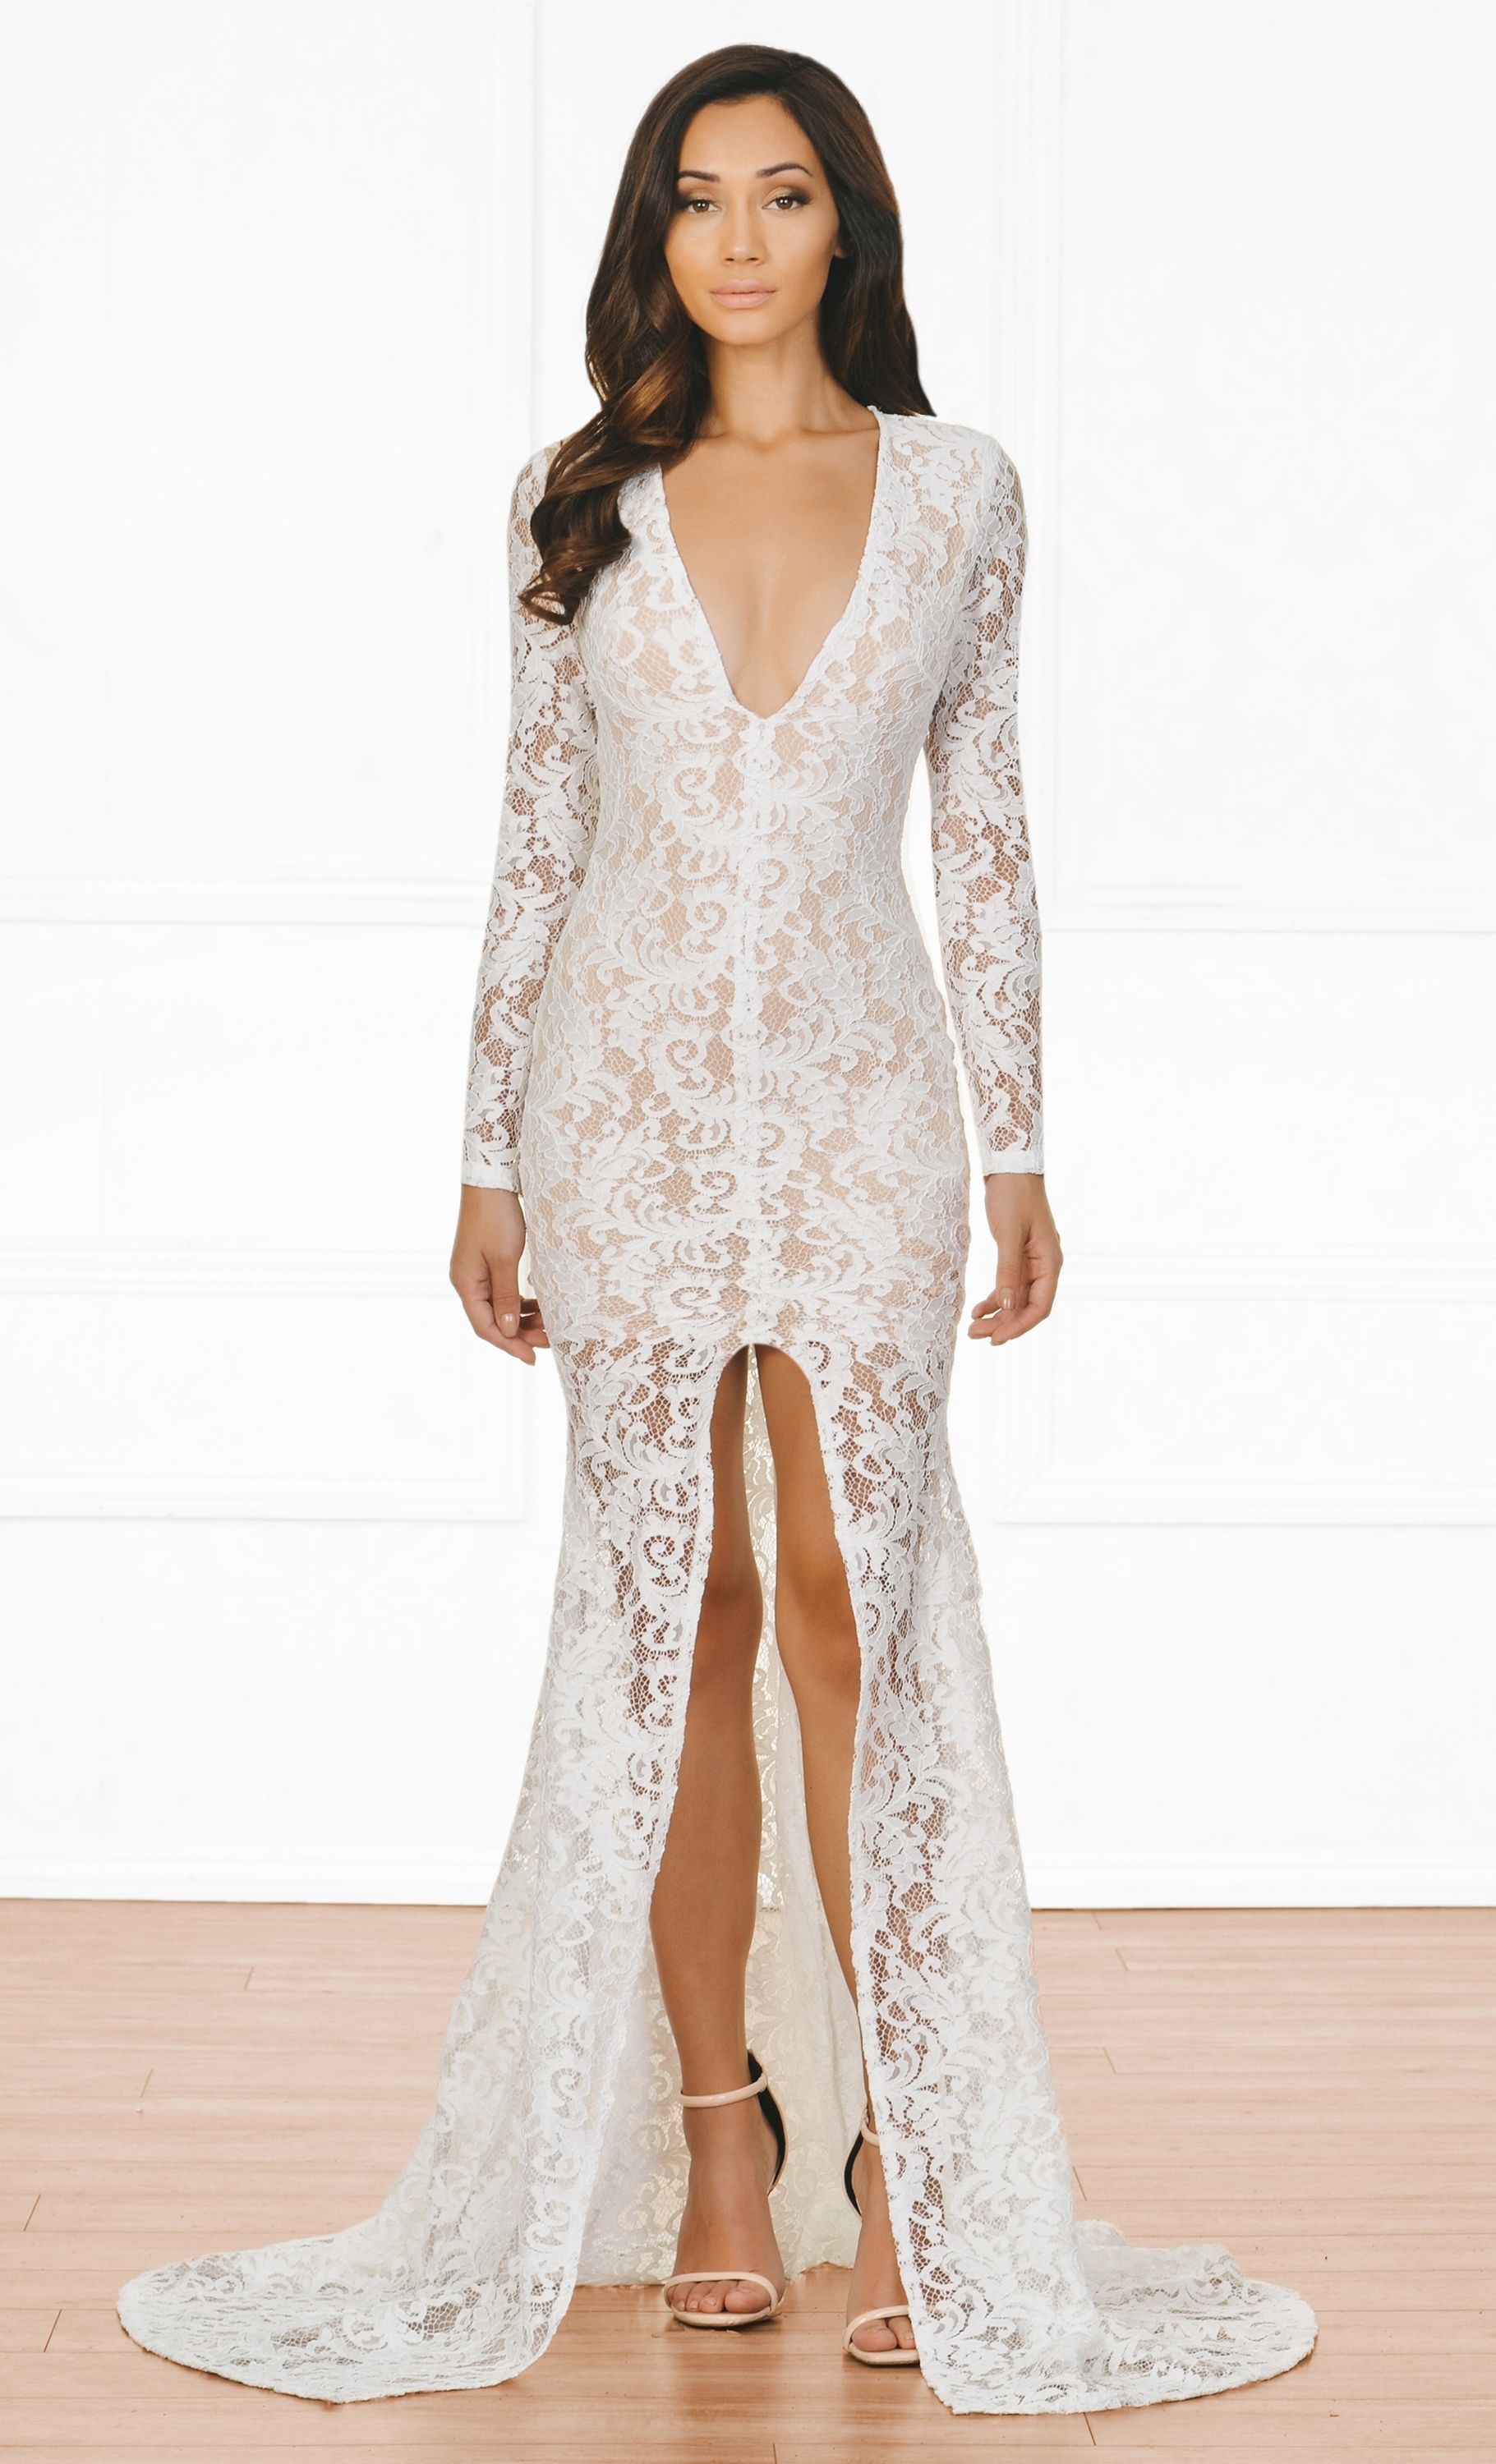 94ae58bee7a9 Indie XO Modern Romance White Nude Lace Long Sleeve Plunge V Neck High  Front Slit Maxi Dress